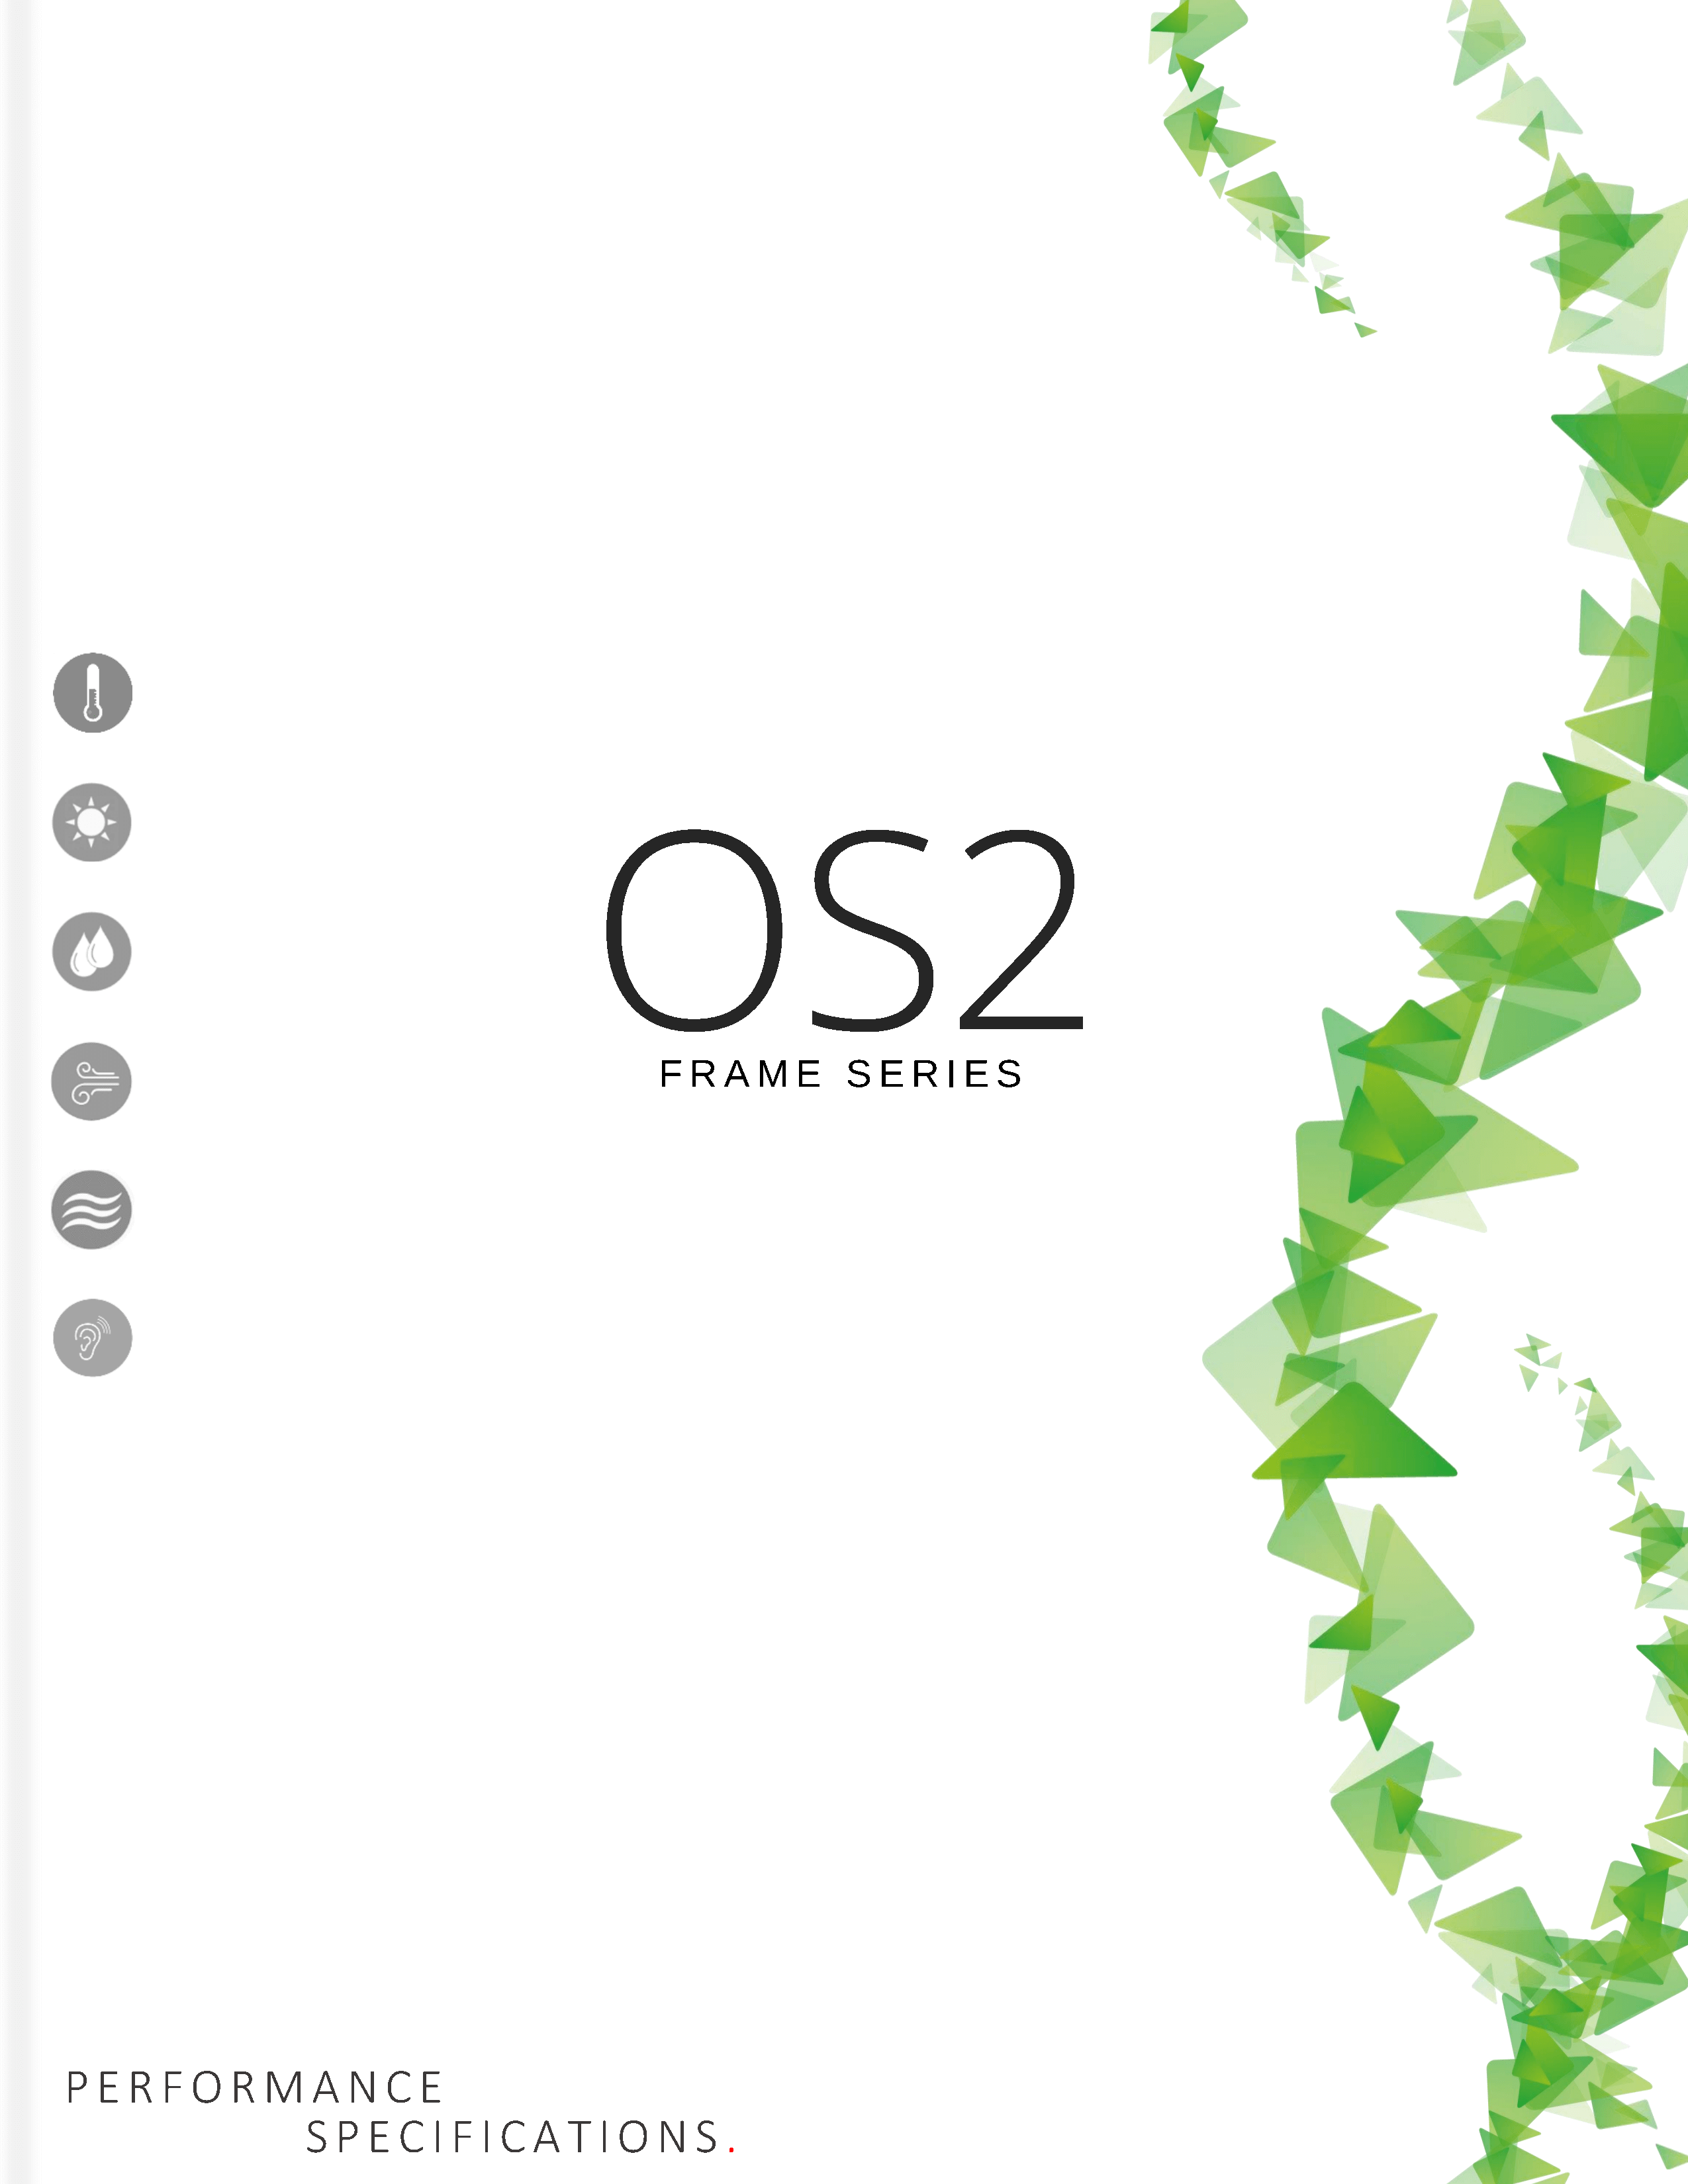 OS2 Frame Specifications